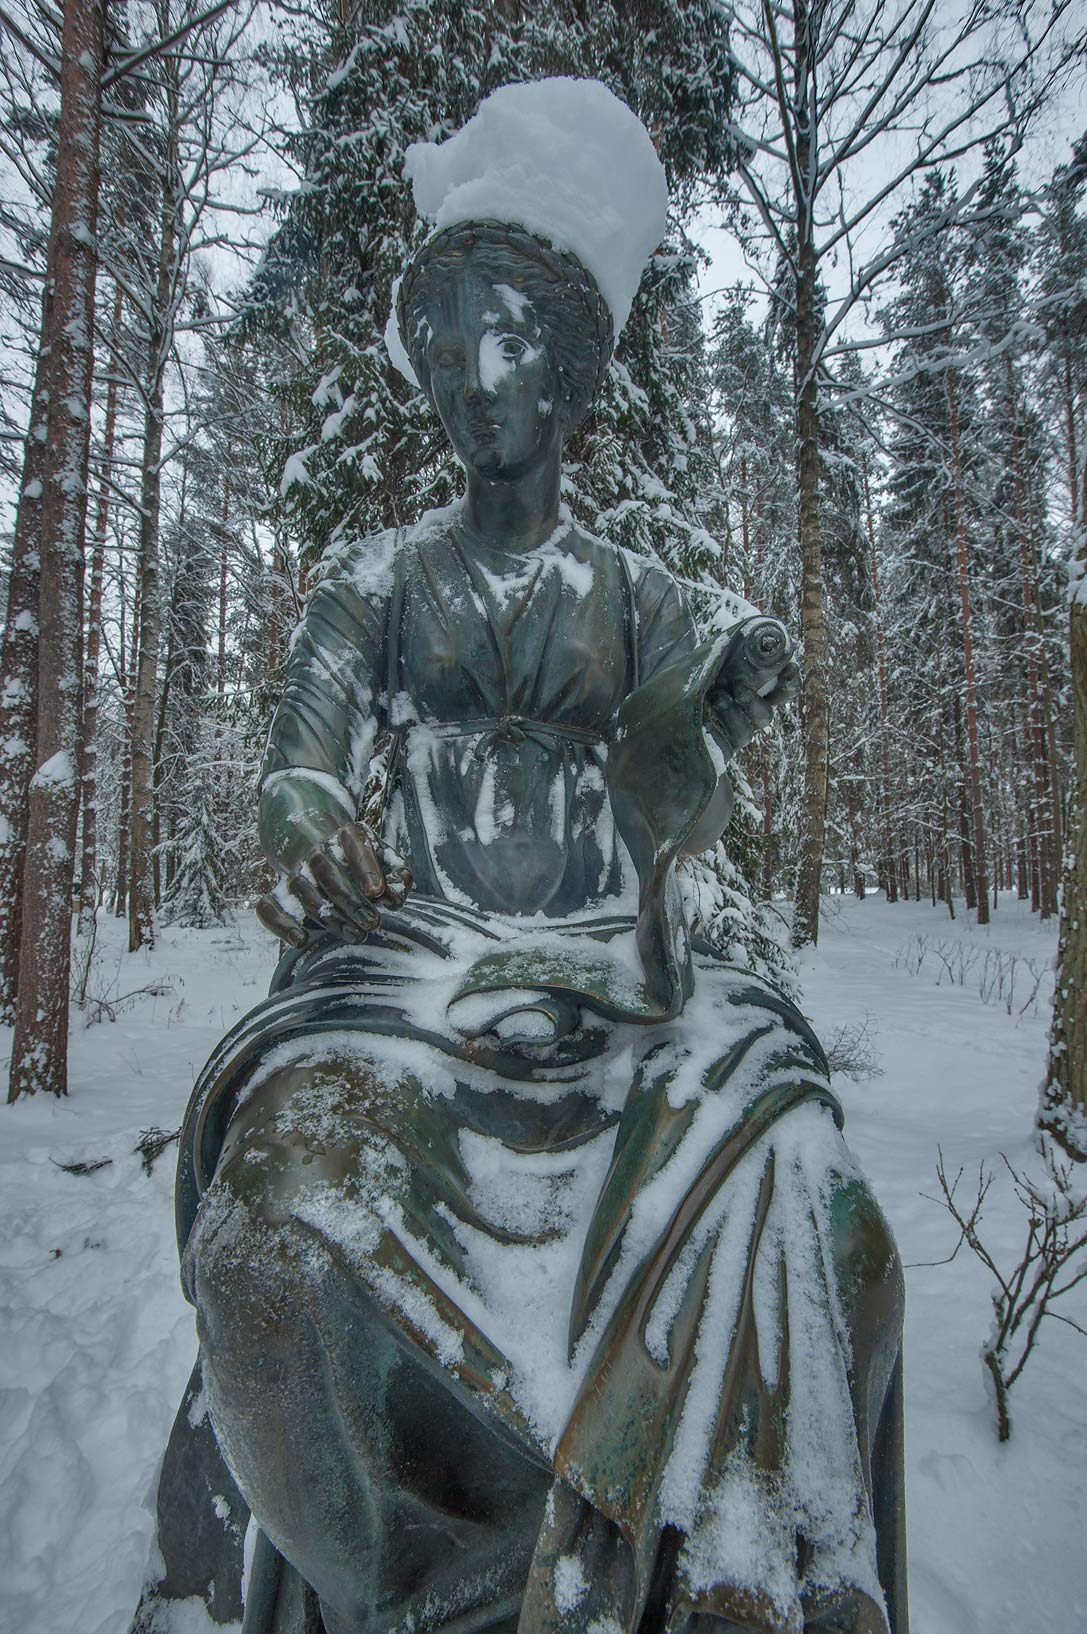 Sculpture of a muse on Twelve Paths (Dvenadtsat...a suburb of St.Petersburg, Russia